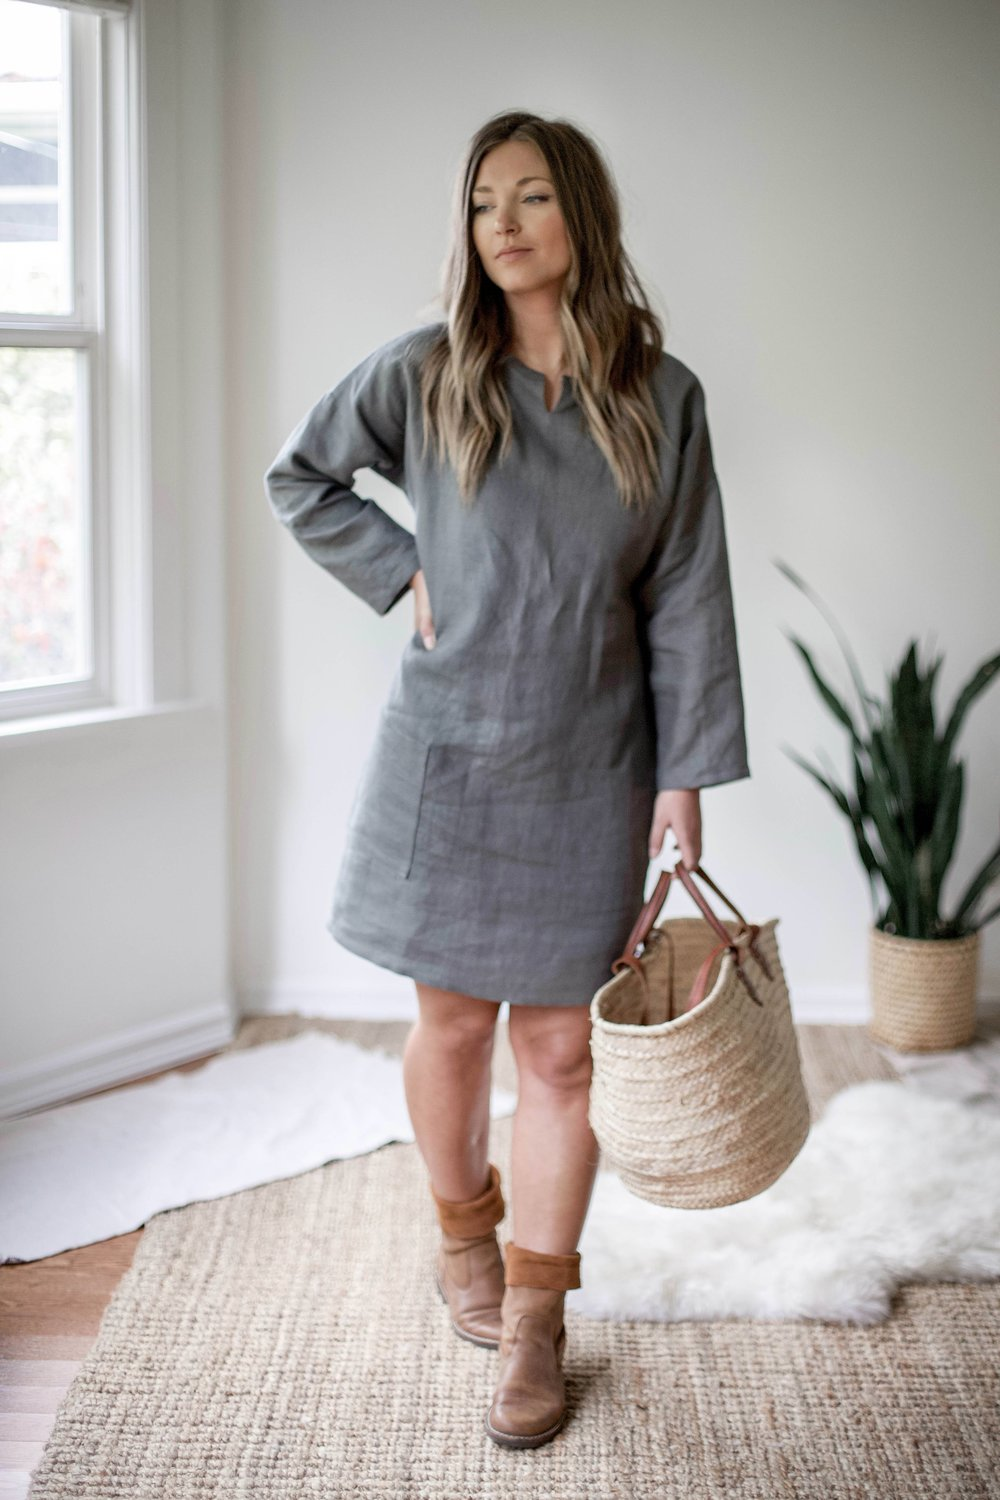 nomi-designs_ali-dress_forest-colored-natural-linen-dress-with-pockets_front-styled-with-boots-and-market-bag copy.jpg